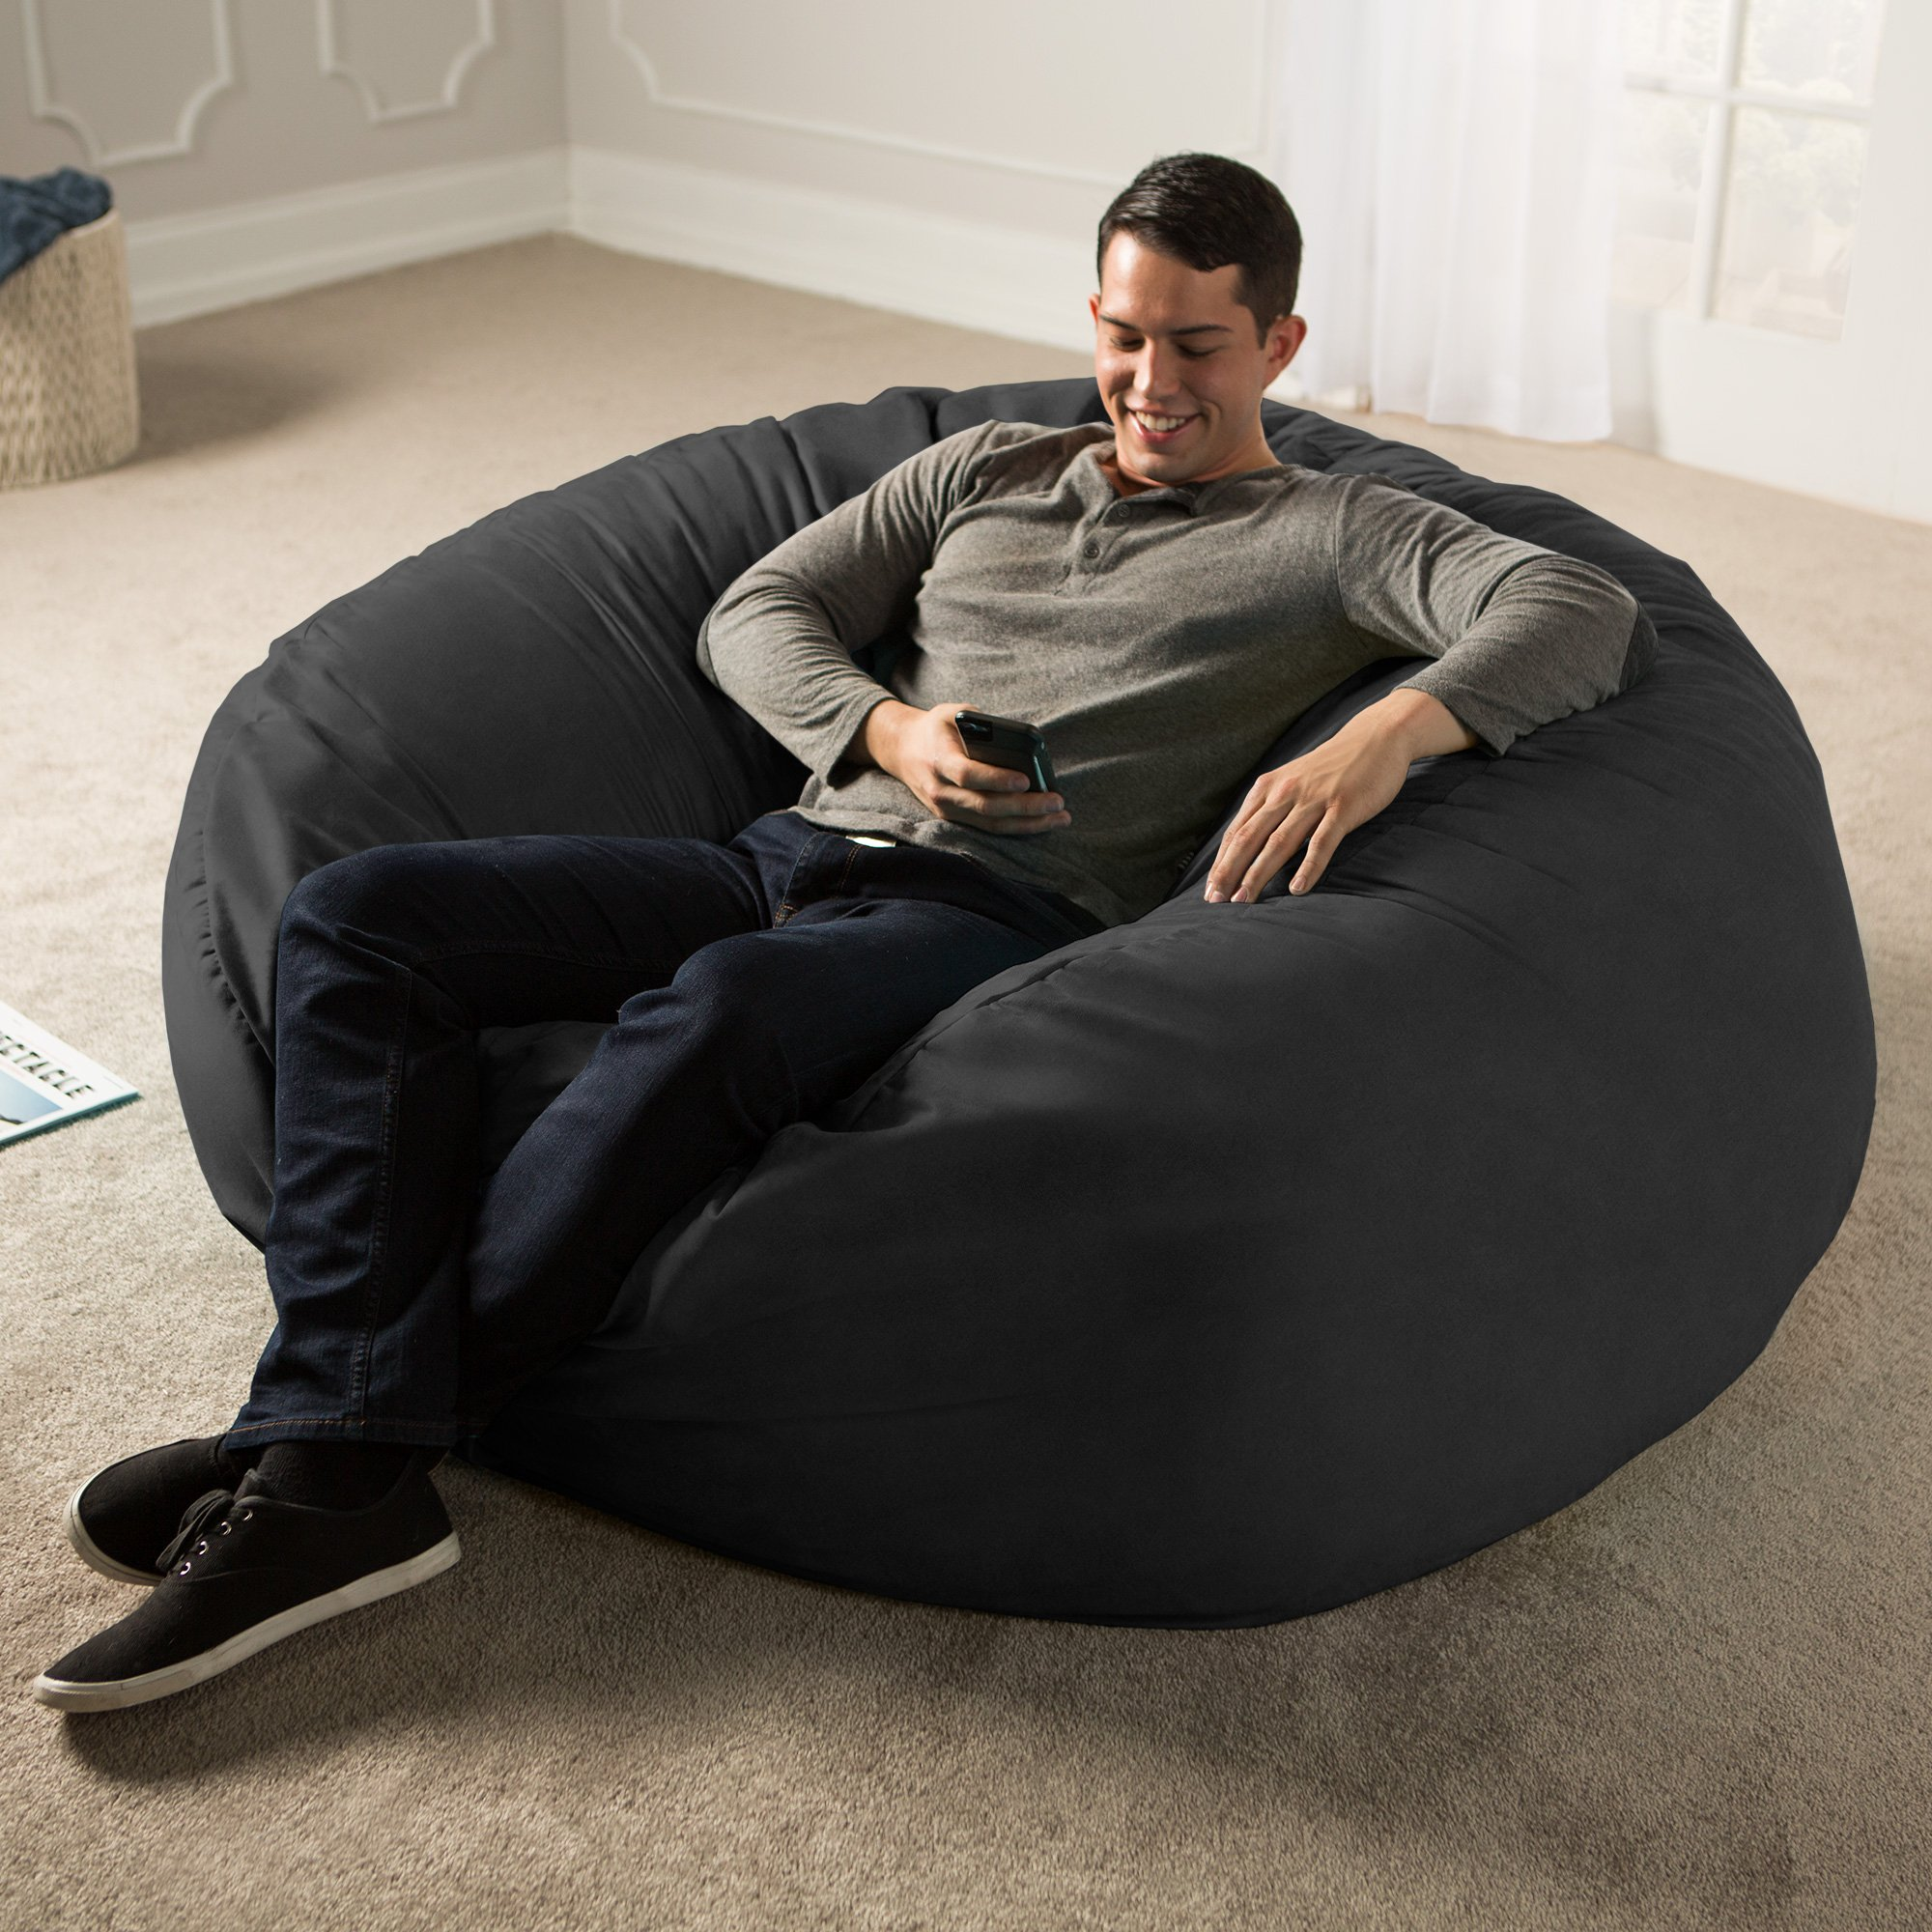 Jaxx 5 Foot Saxx - Big Bean Bag Chair for Adults, Black